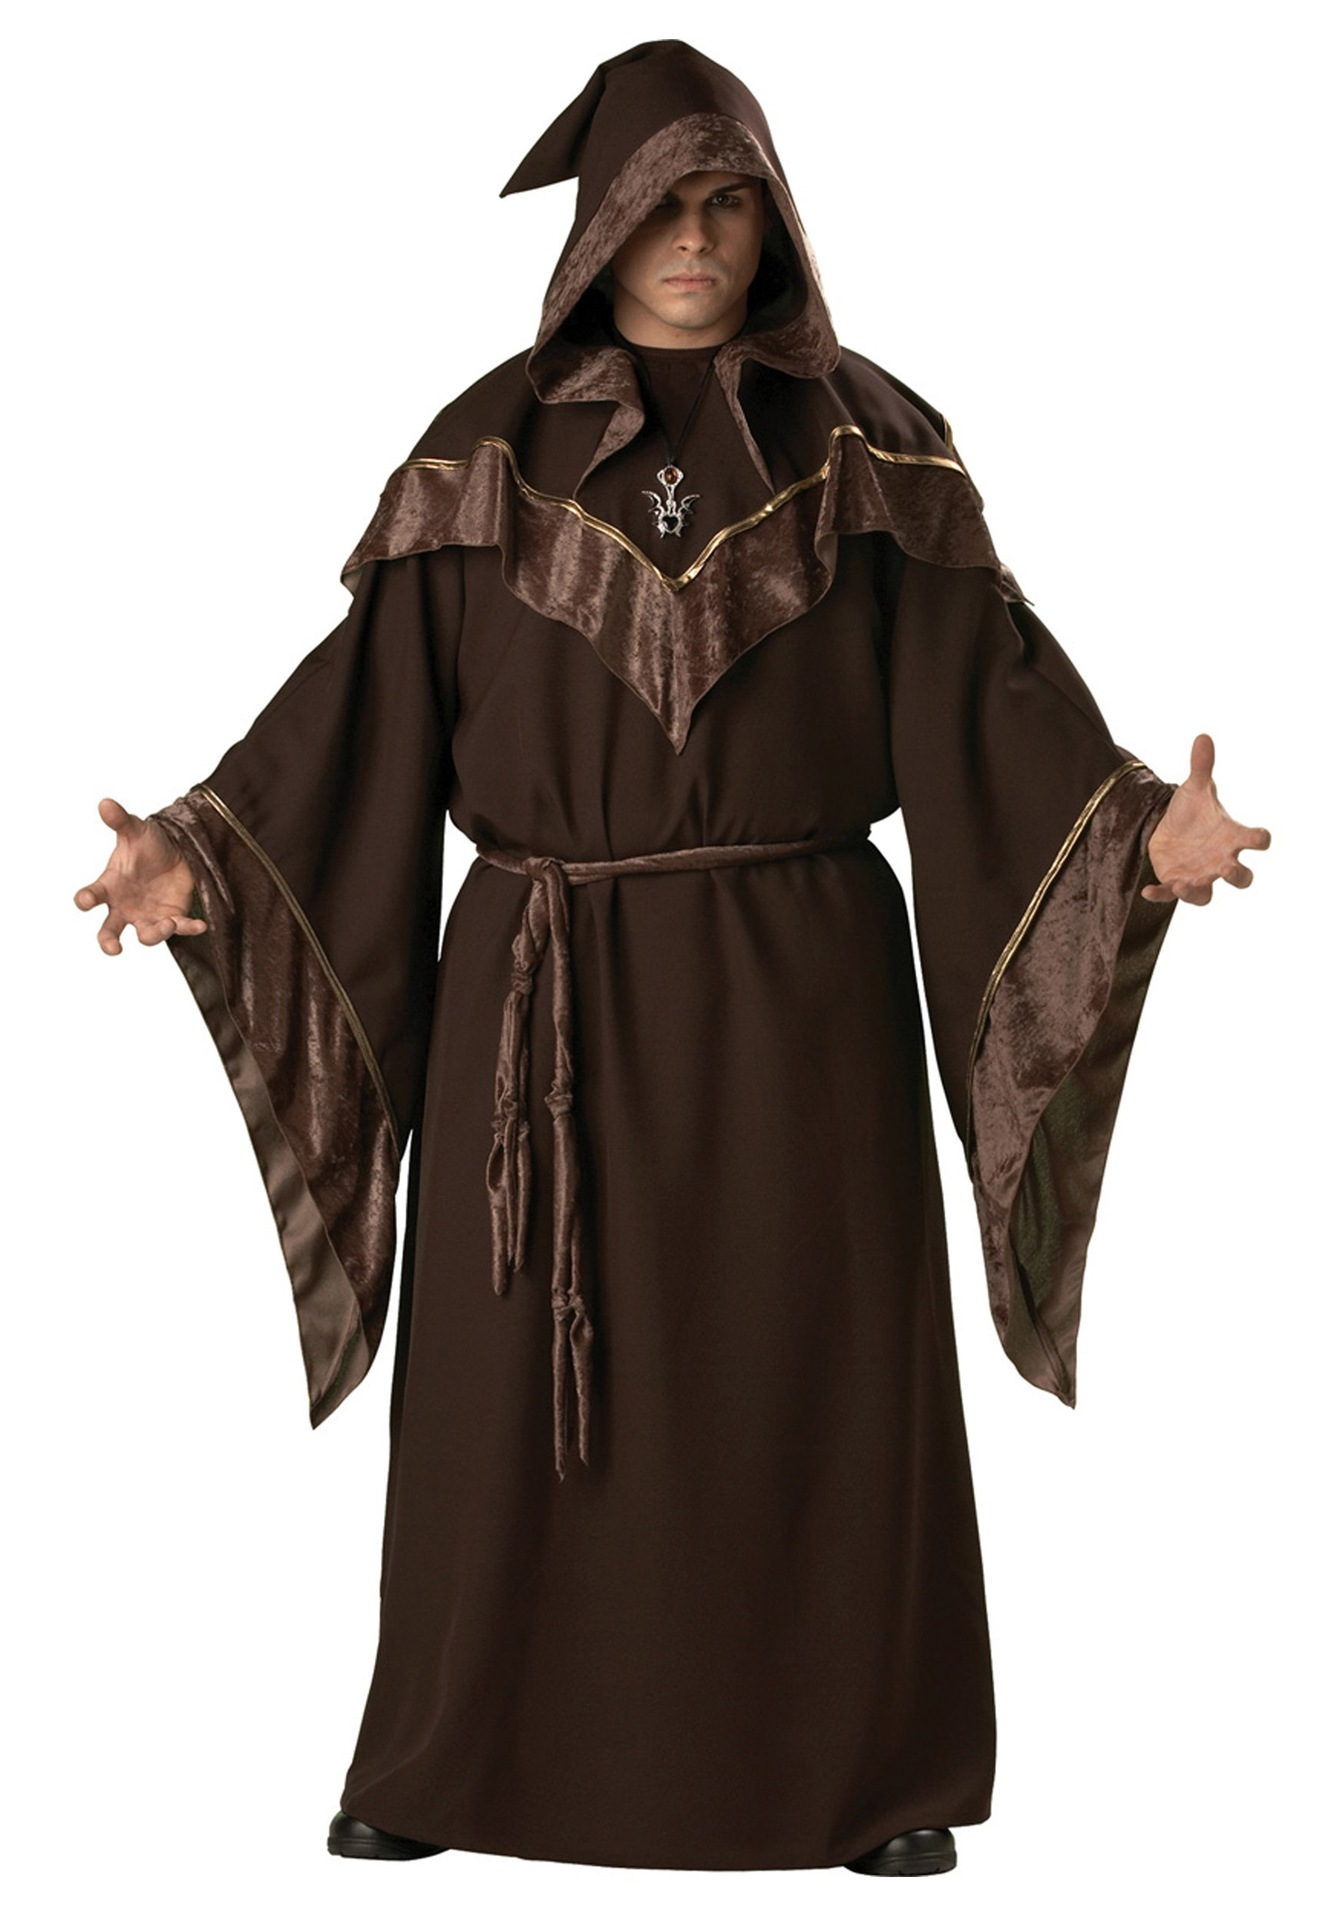 High Quality Handsome Brown Sorcerer Godfather Cosplay Costume Purim Halloween Party Wizard Priest Monk Robe For Adult Men